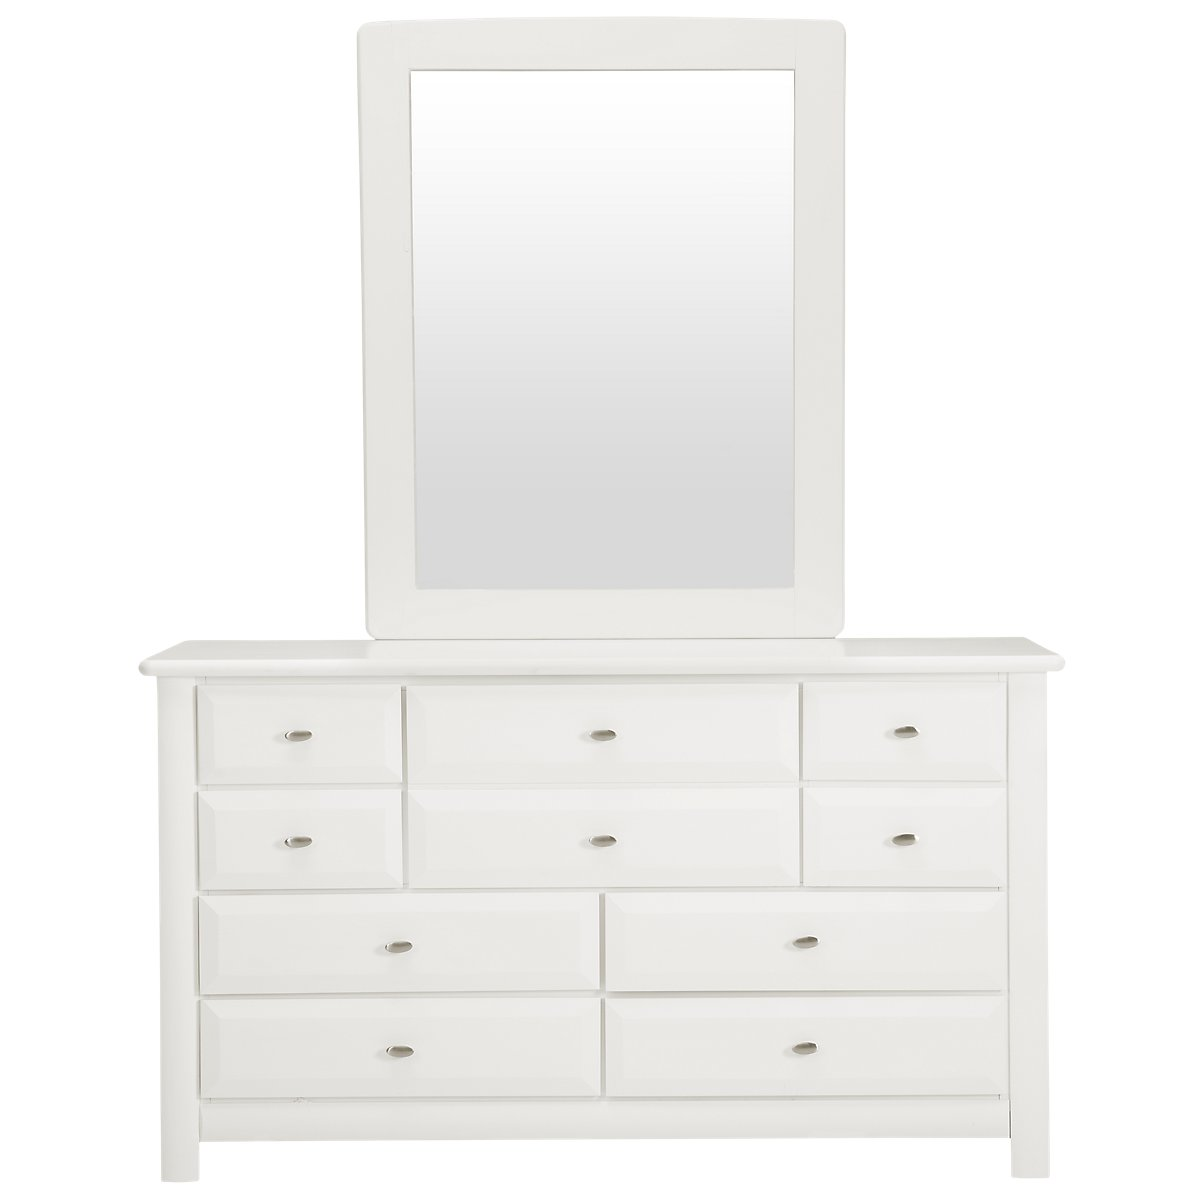 City Furniture Laguna White Dresser Mirror